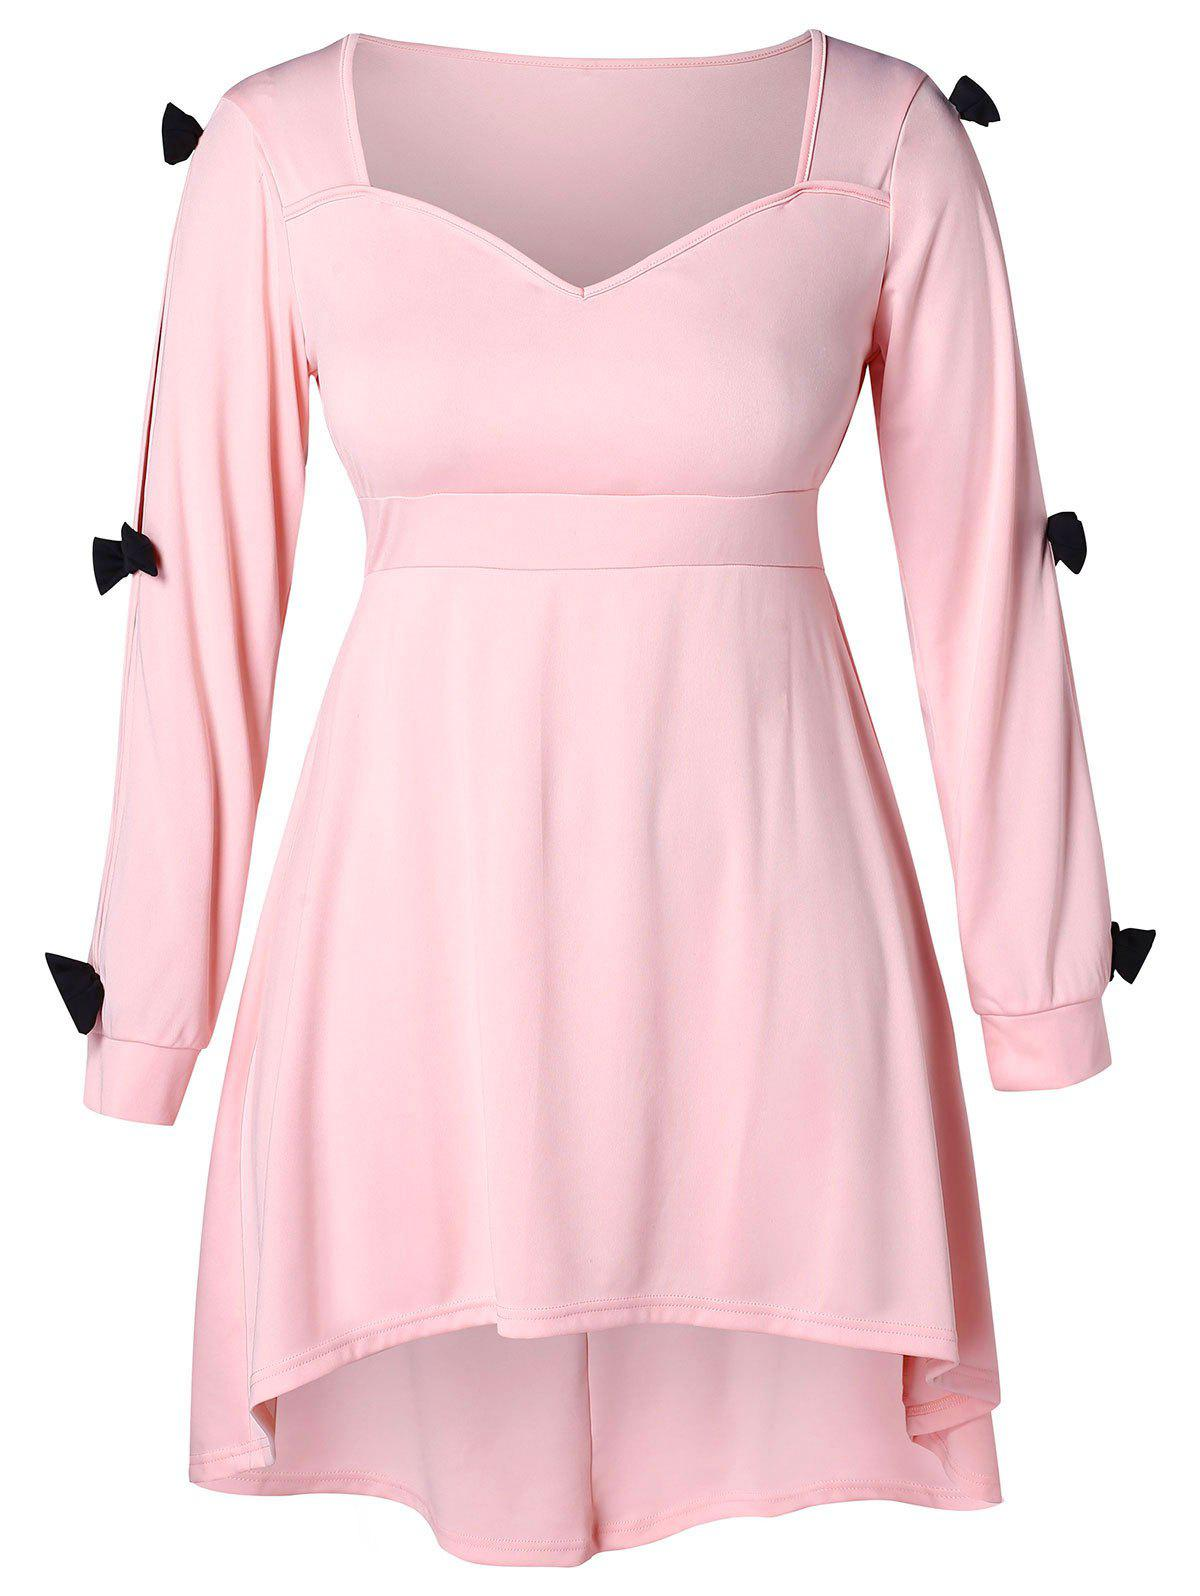 Buy Bowknot Embellished Plus Size A Line Dress